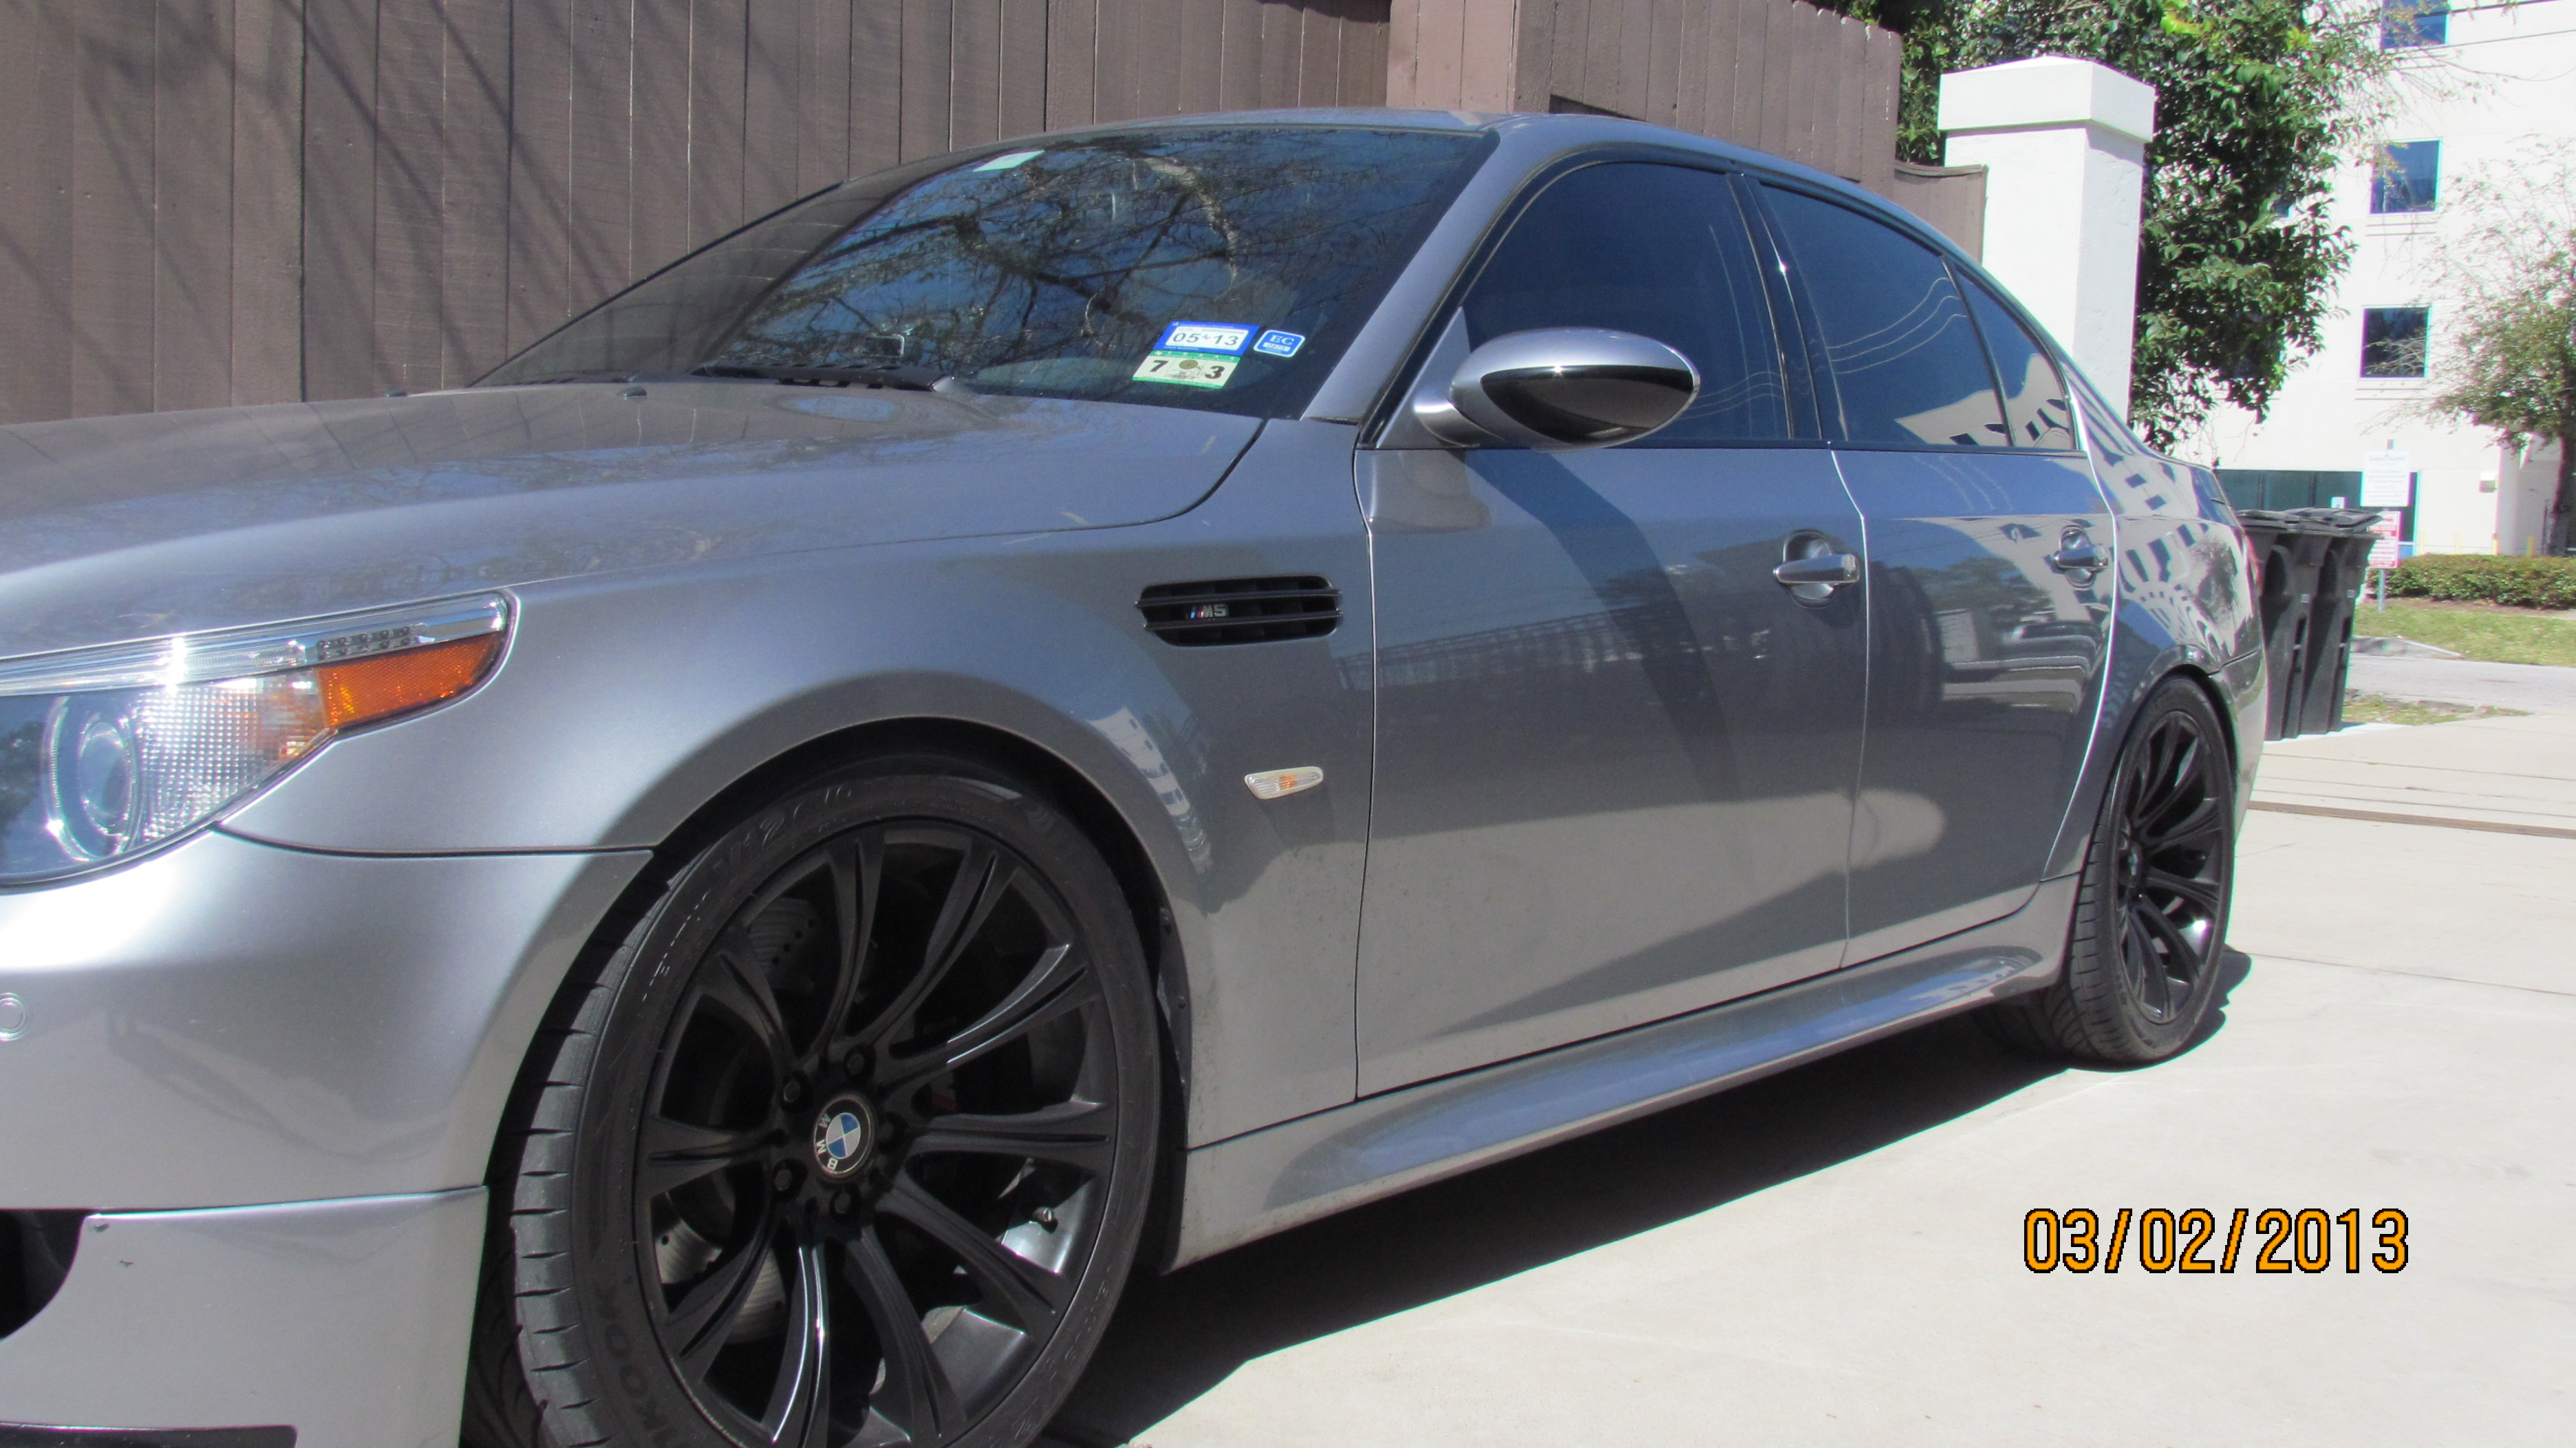 E60 (03-10) For Sale 2006 BMW M5 with 59K and damaged engine - BMW M5 Forum and M6 Forums